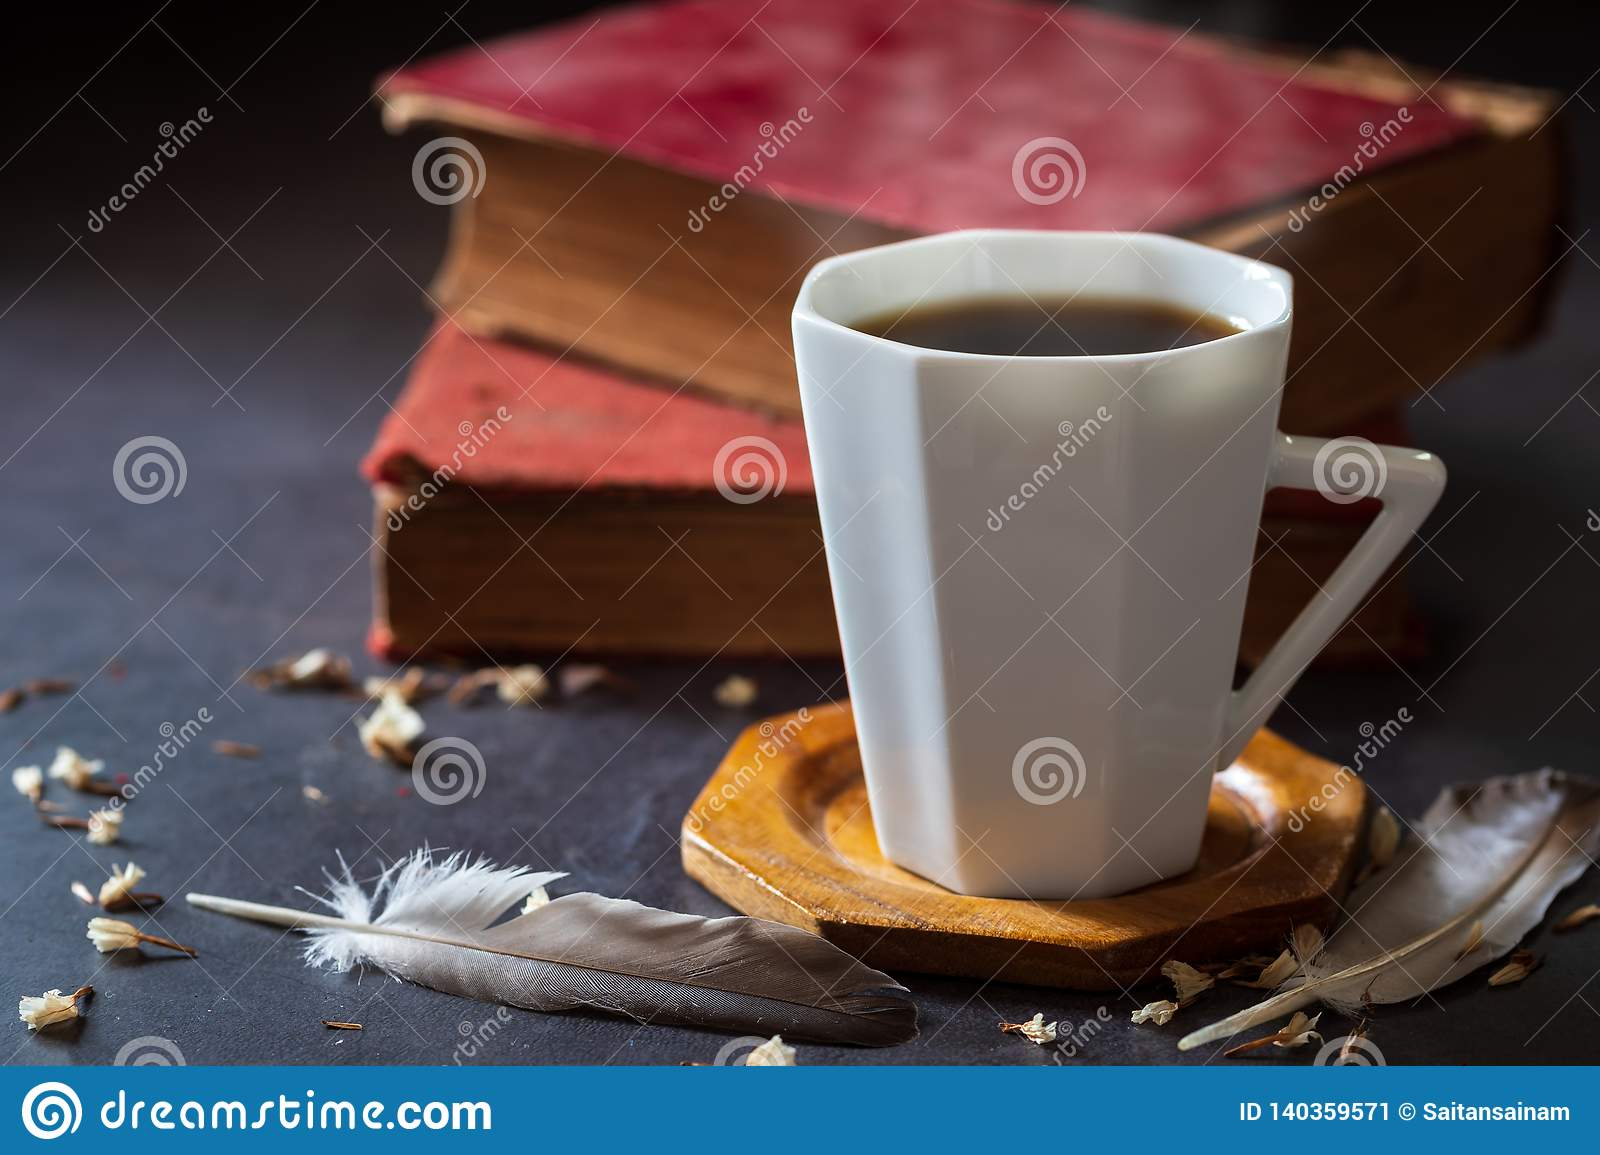 Black coffee in white cup and old books with feather and dried flower petals.